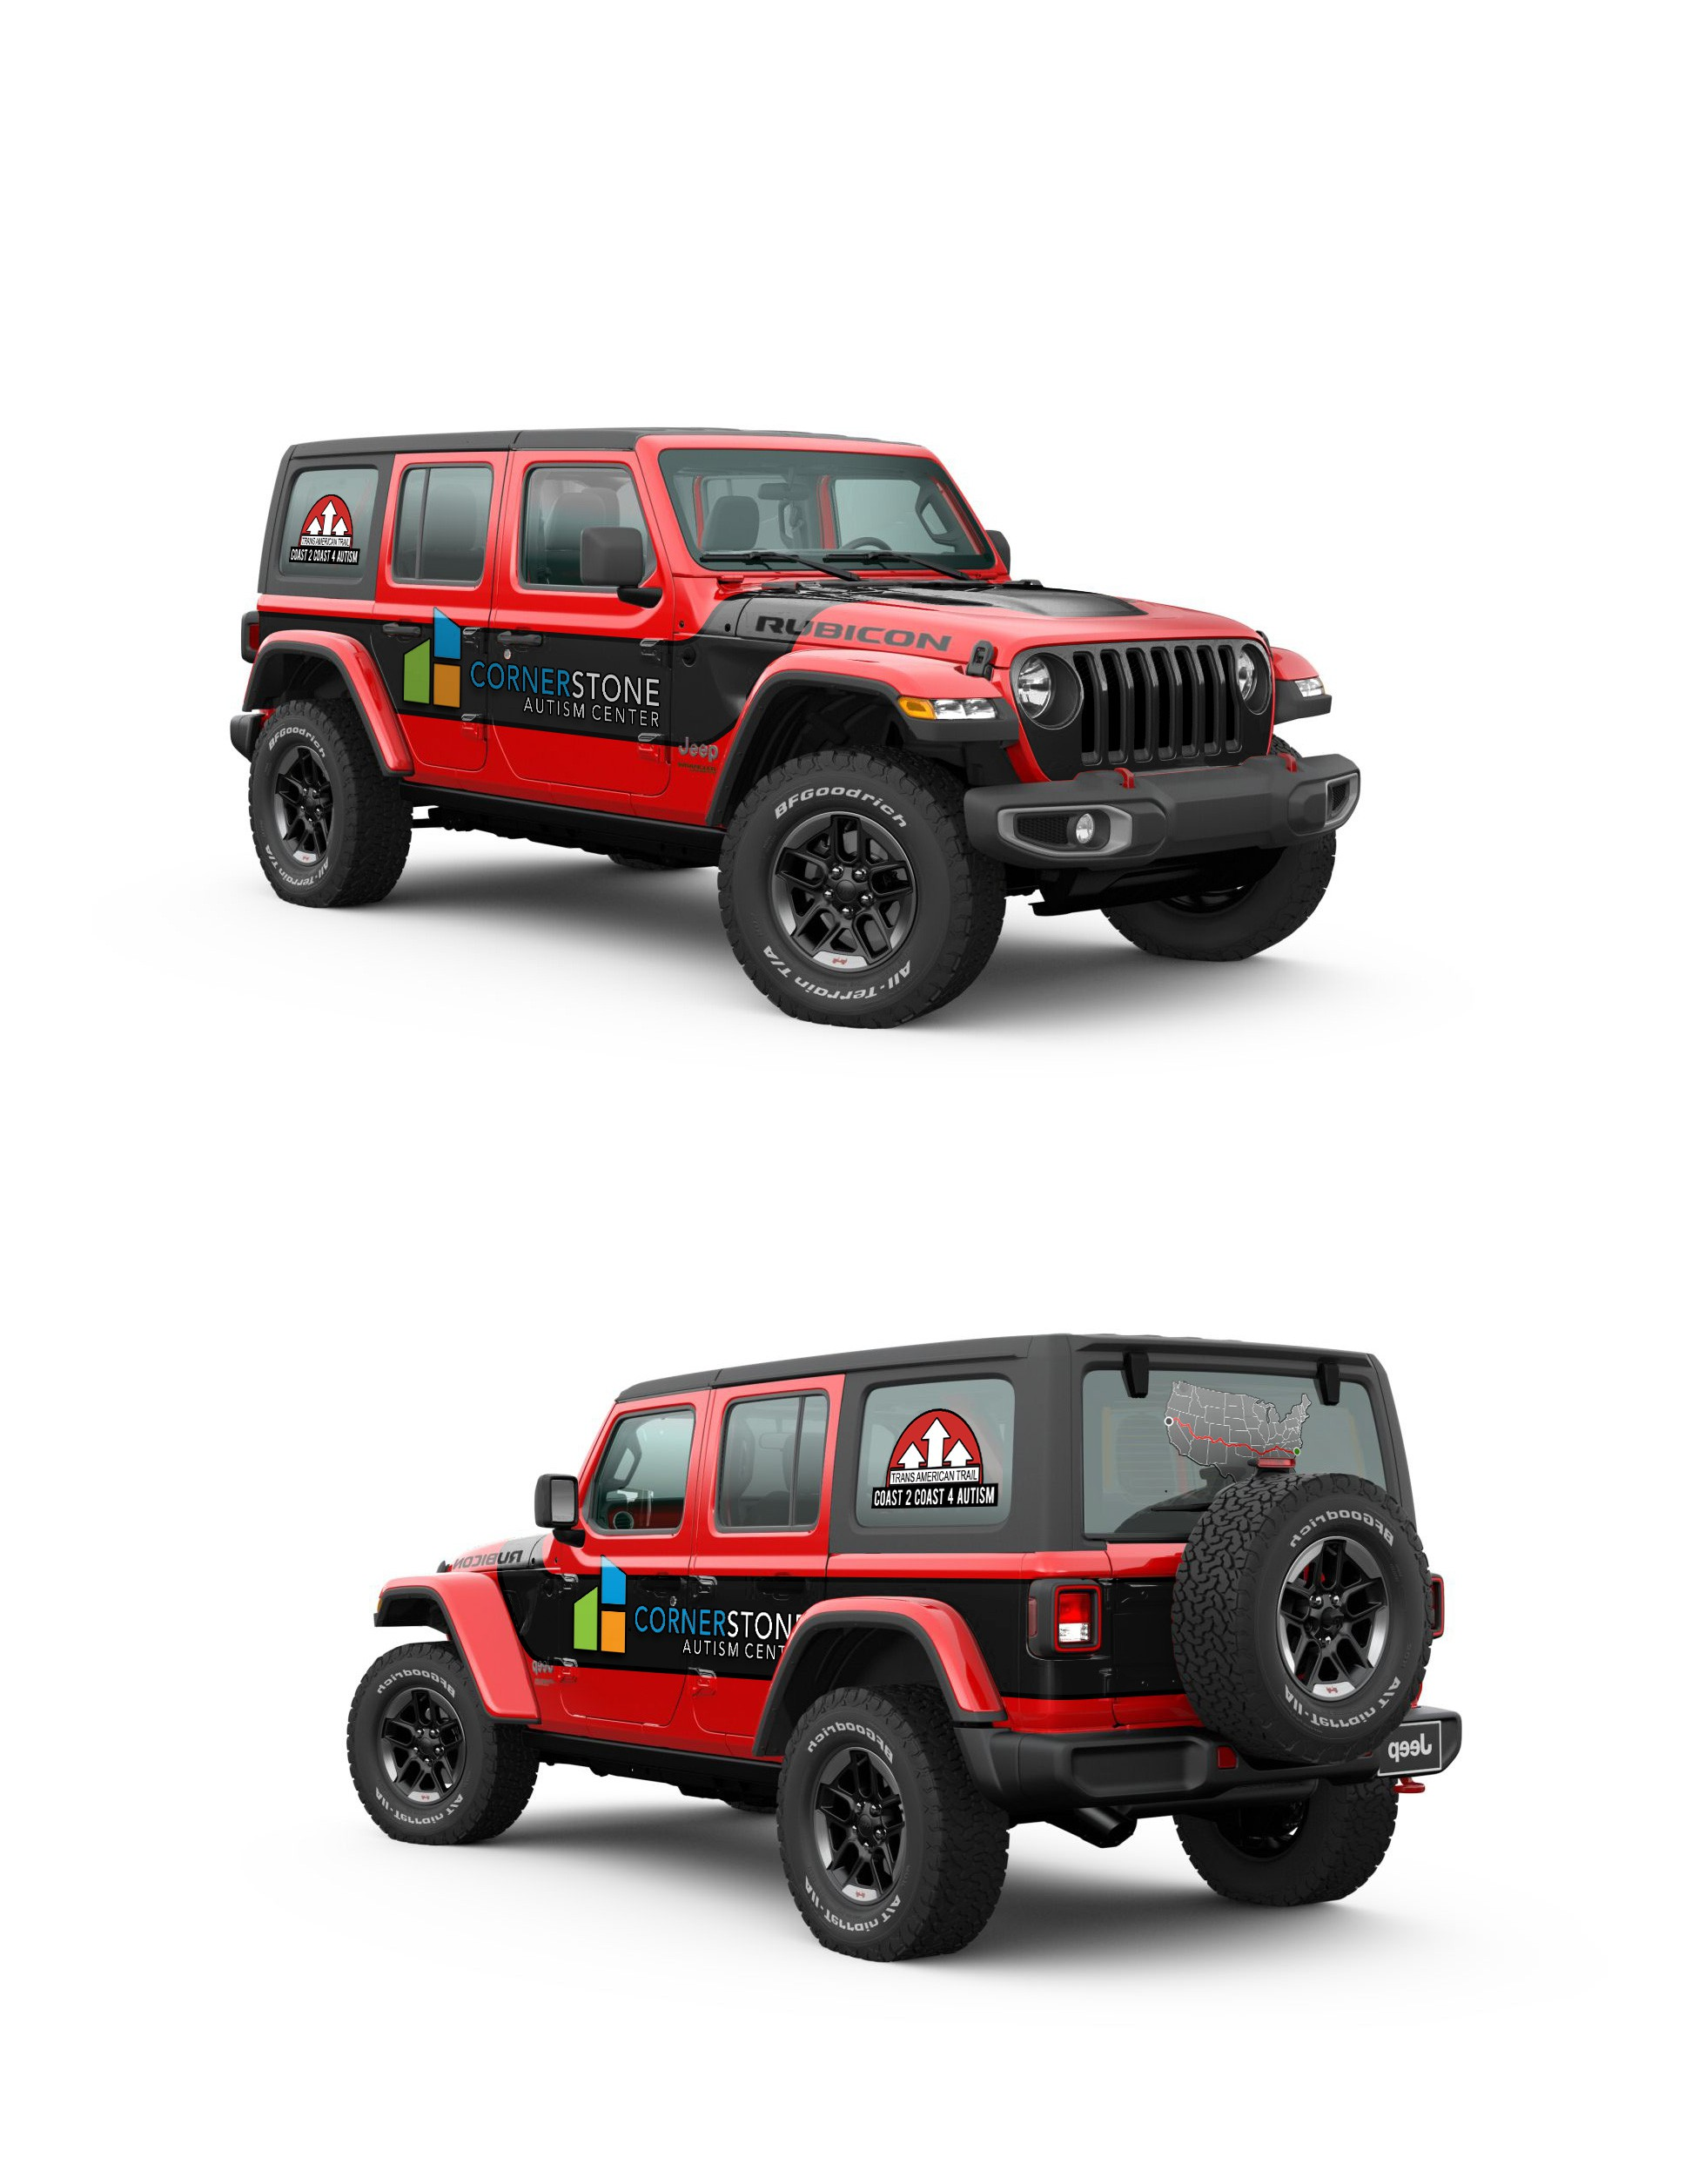 Jeep Wrap for Autism Center Roadtrip across US